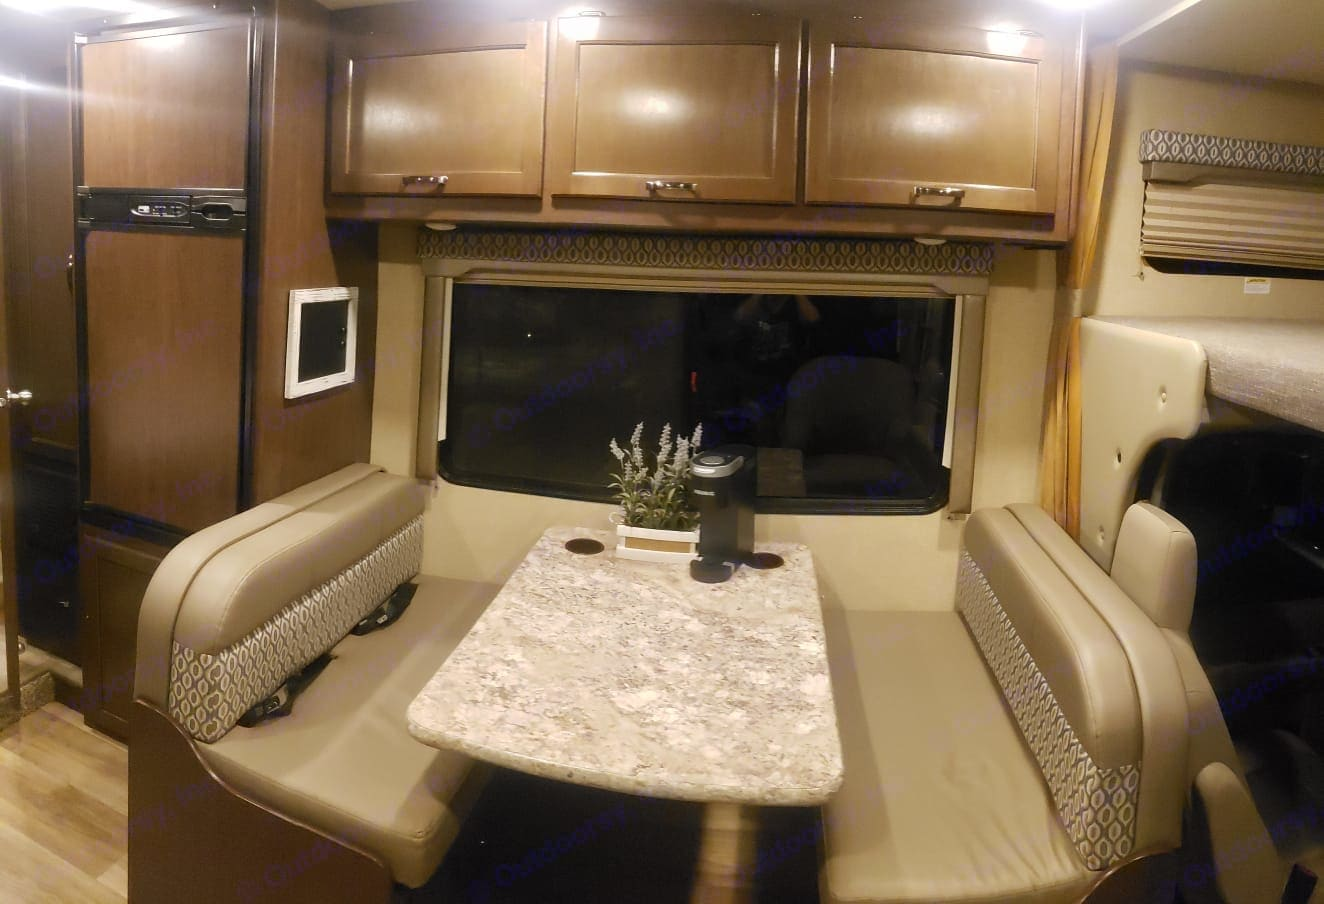 To the left is the Freezer/Refrigerator. Dinette converts into a sleeping area that can accommodate up to  two people. Two seat belts on left booth.. Thor Motor Coach Freedom Elite 2017